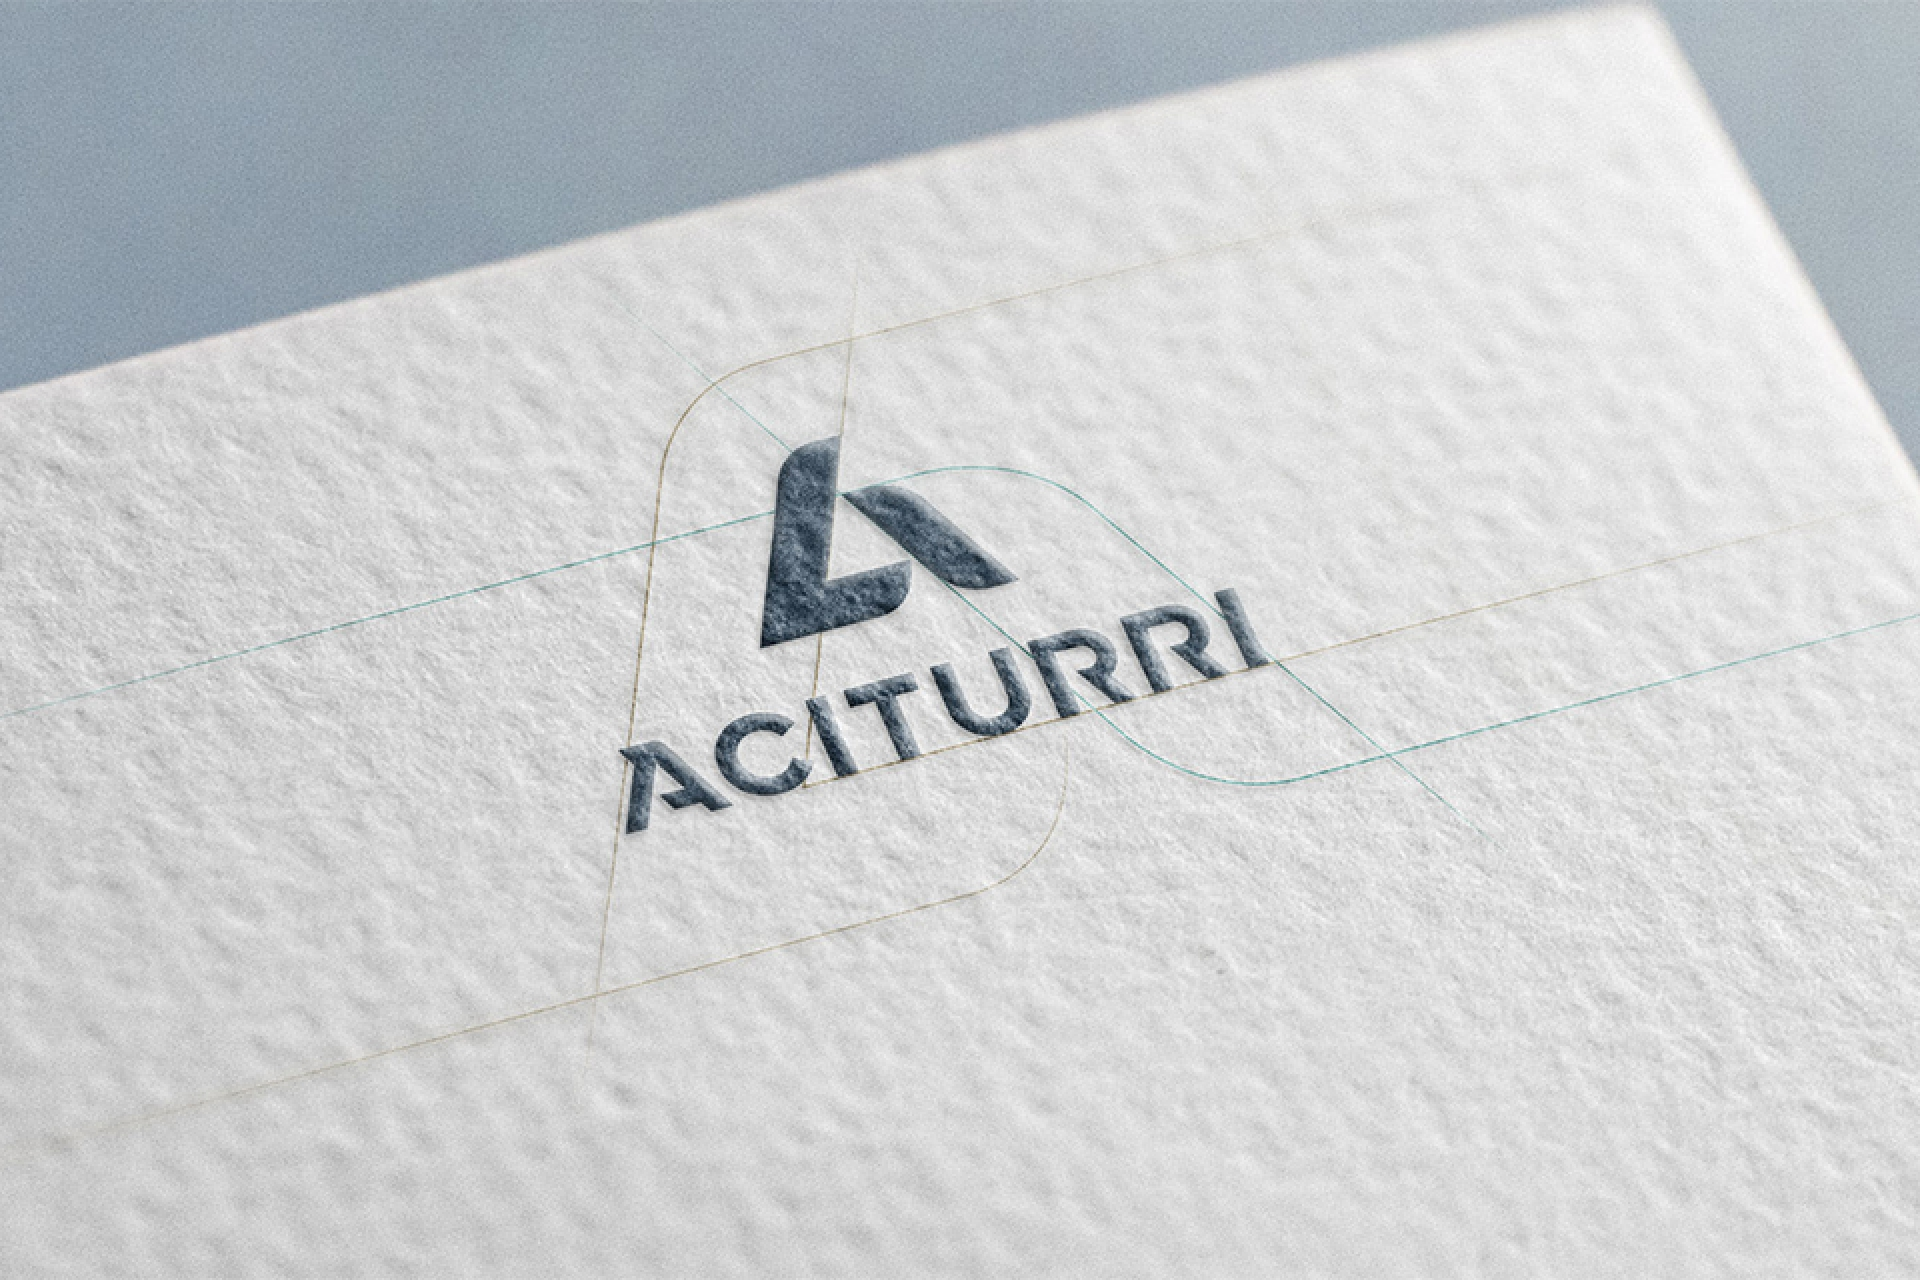 Corporate image for Aciturri